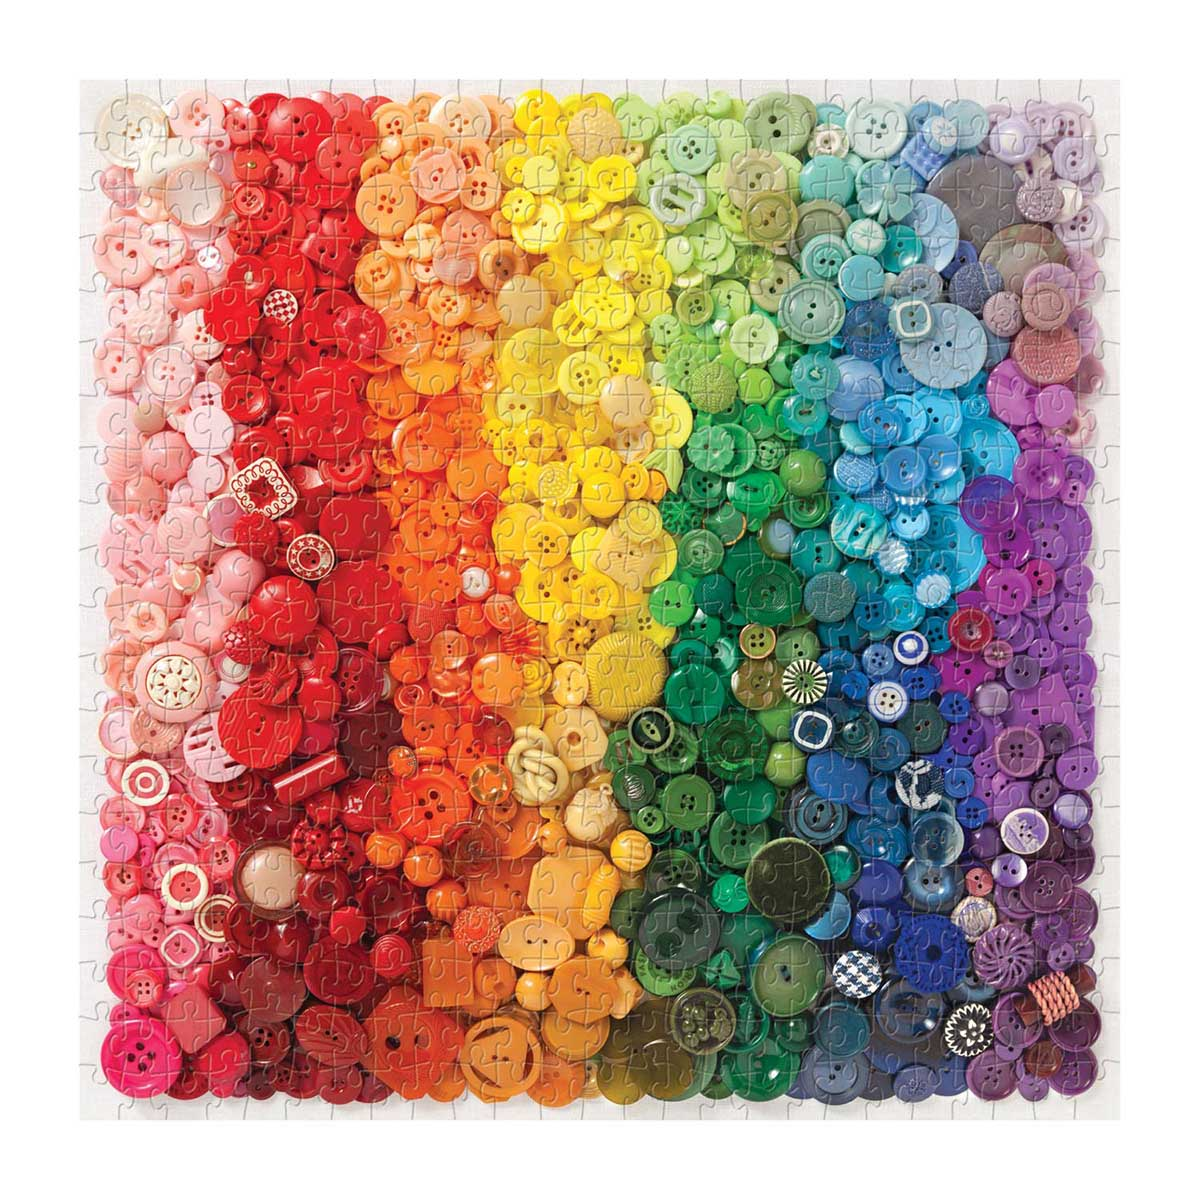 Rainbow Buttons Abstract Jigsaw Puzzle